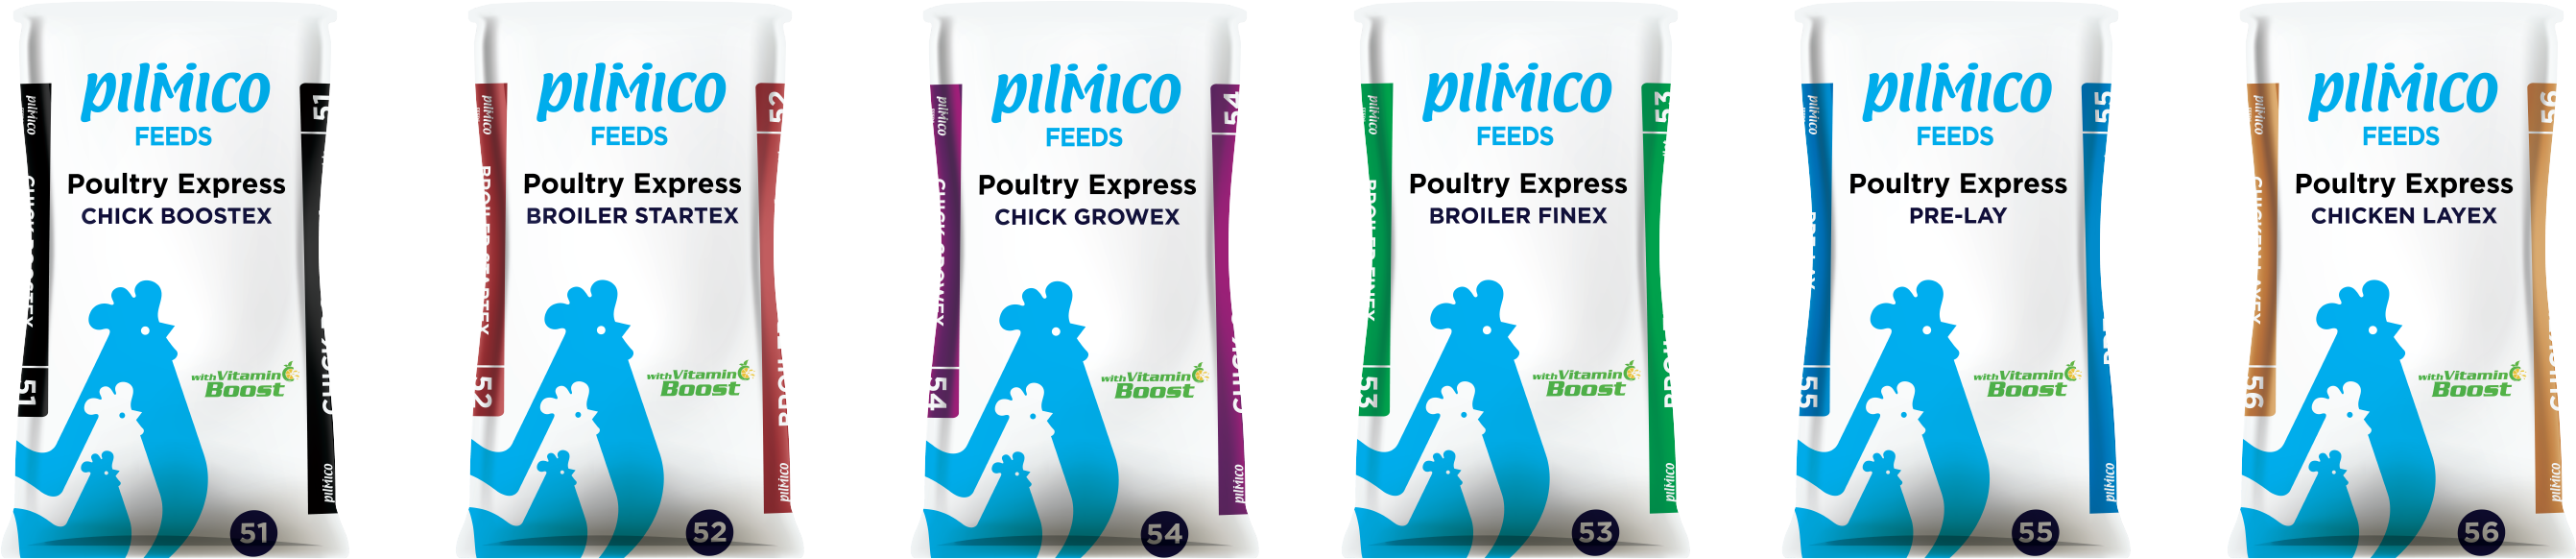 Poultry Express